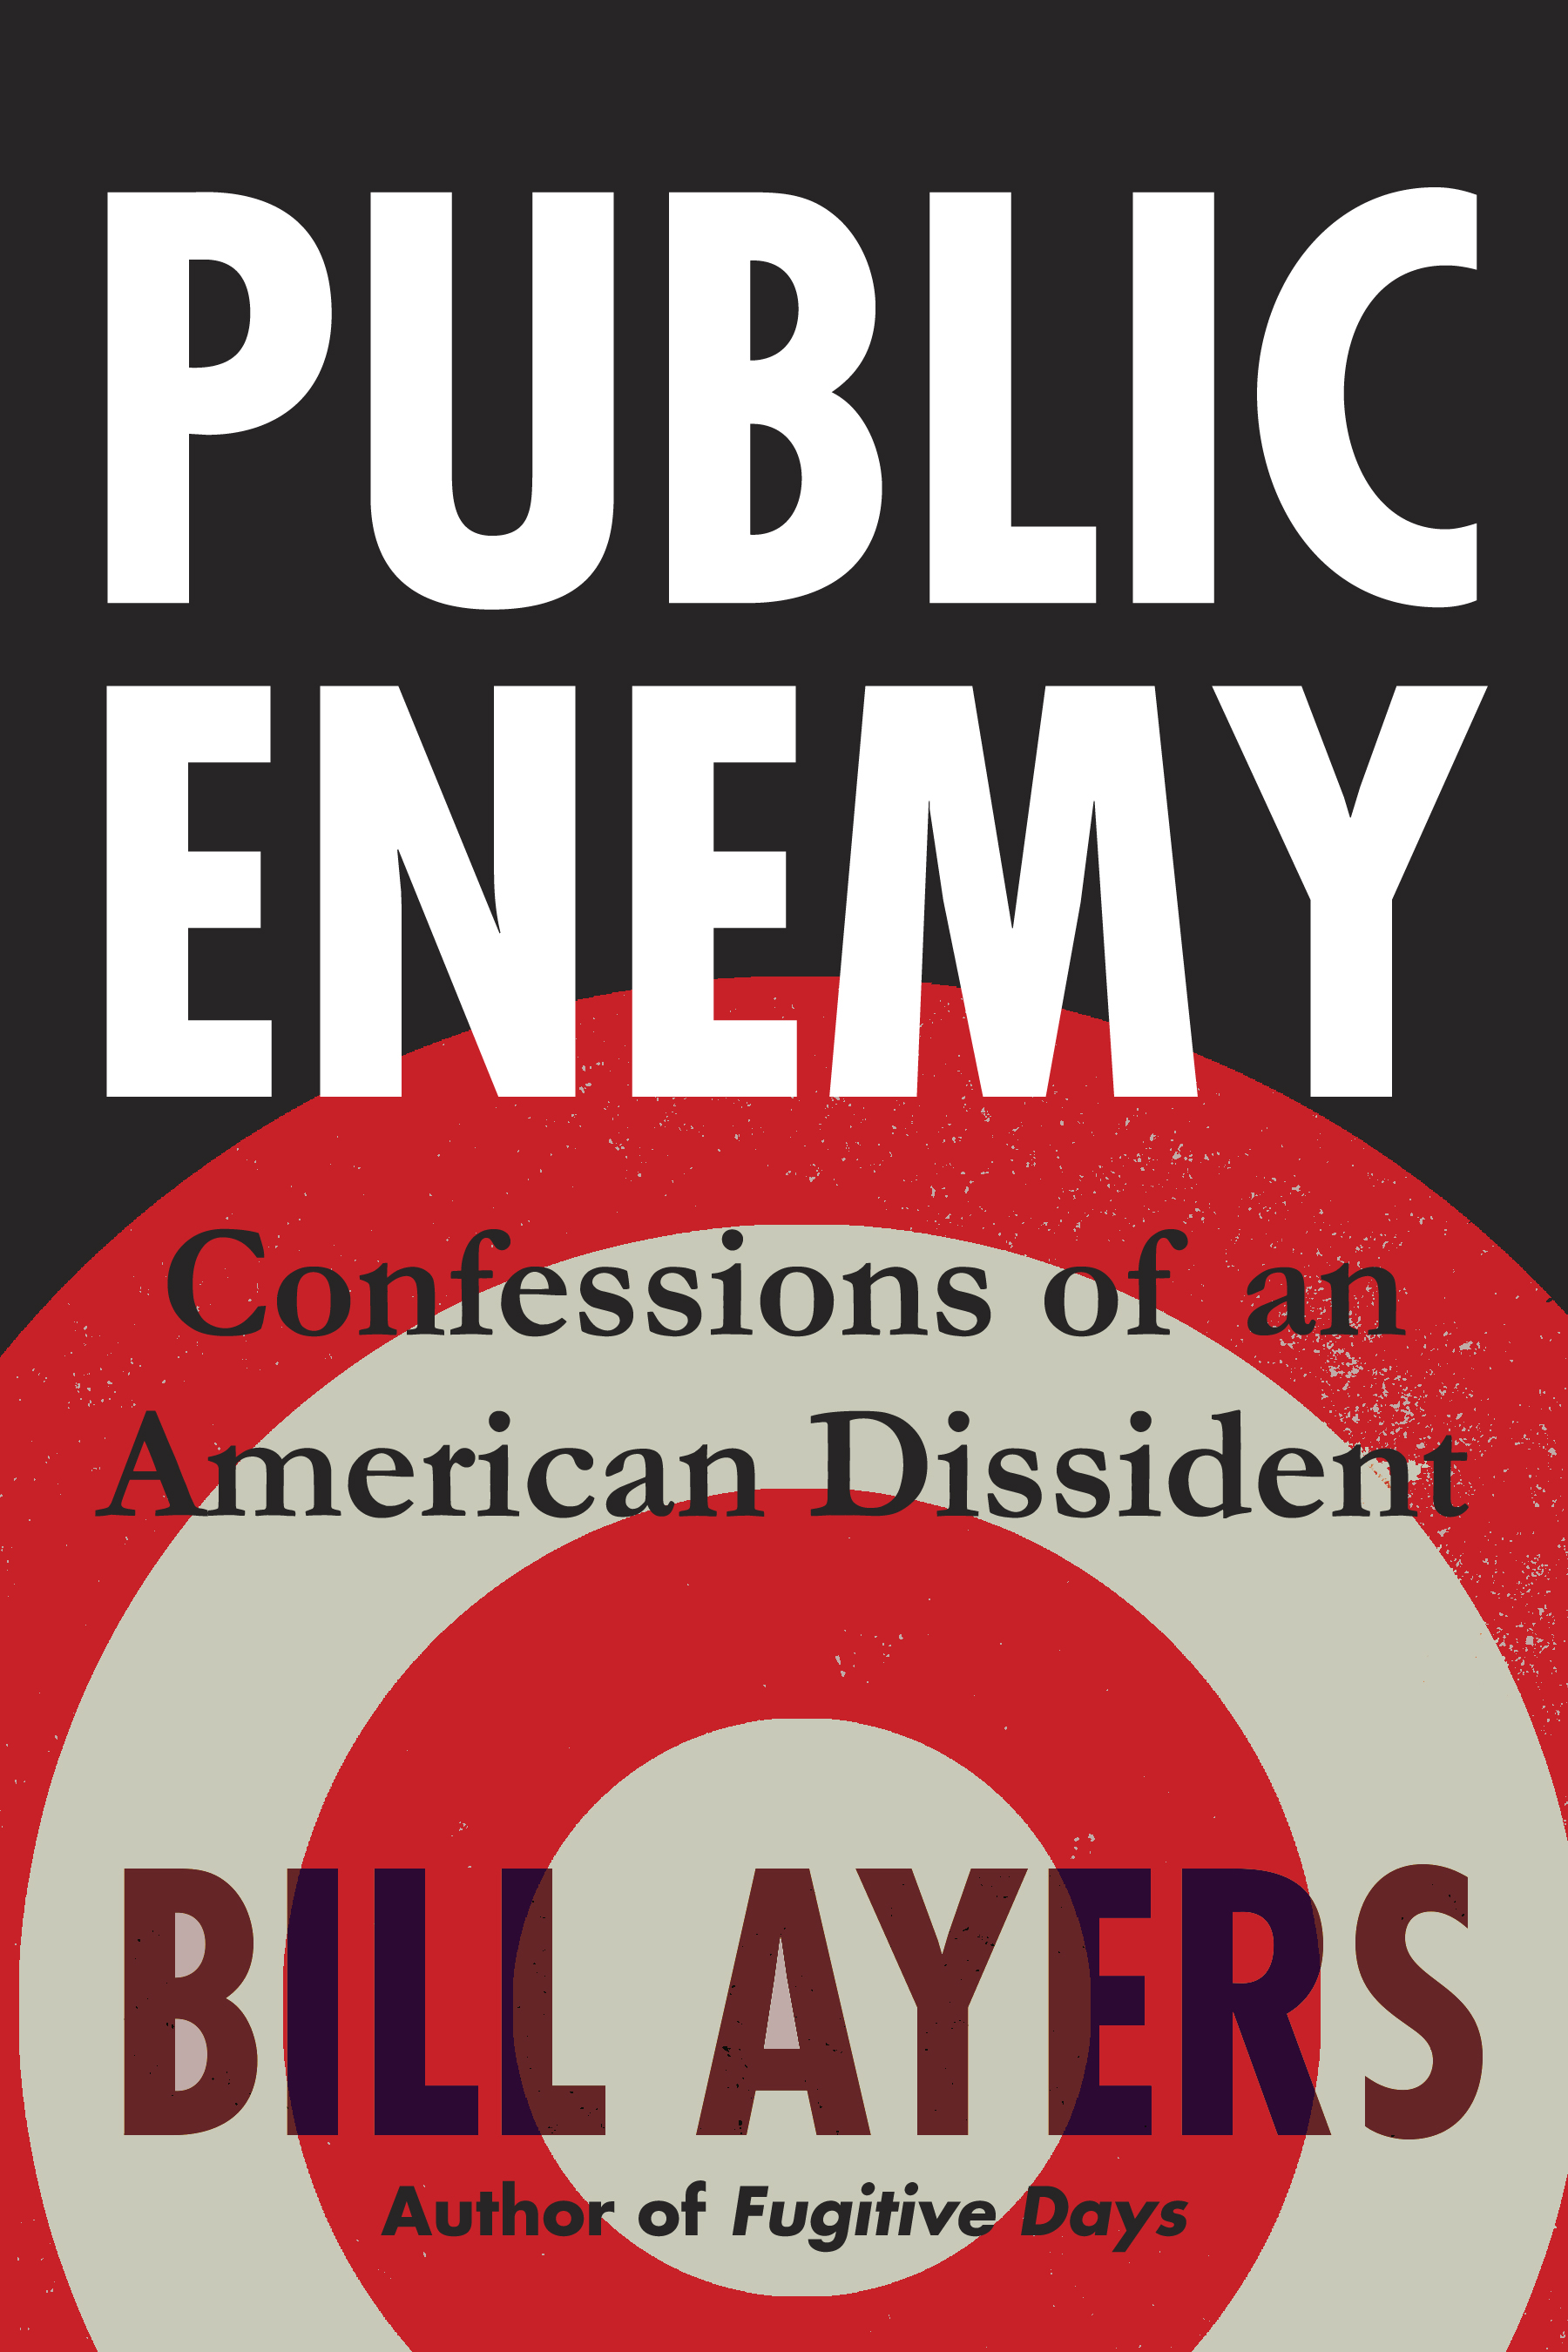 Bill Ayers Book Signing and Reception!